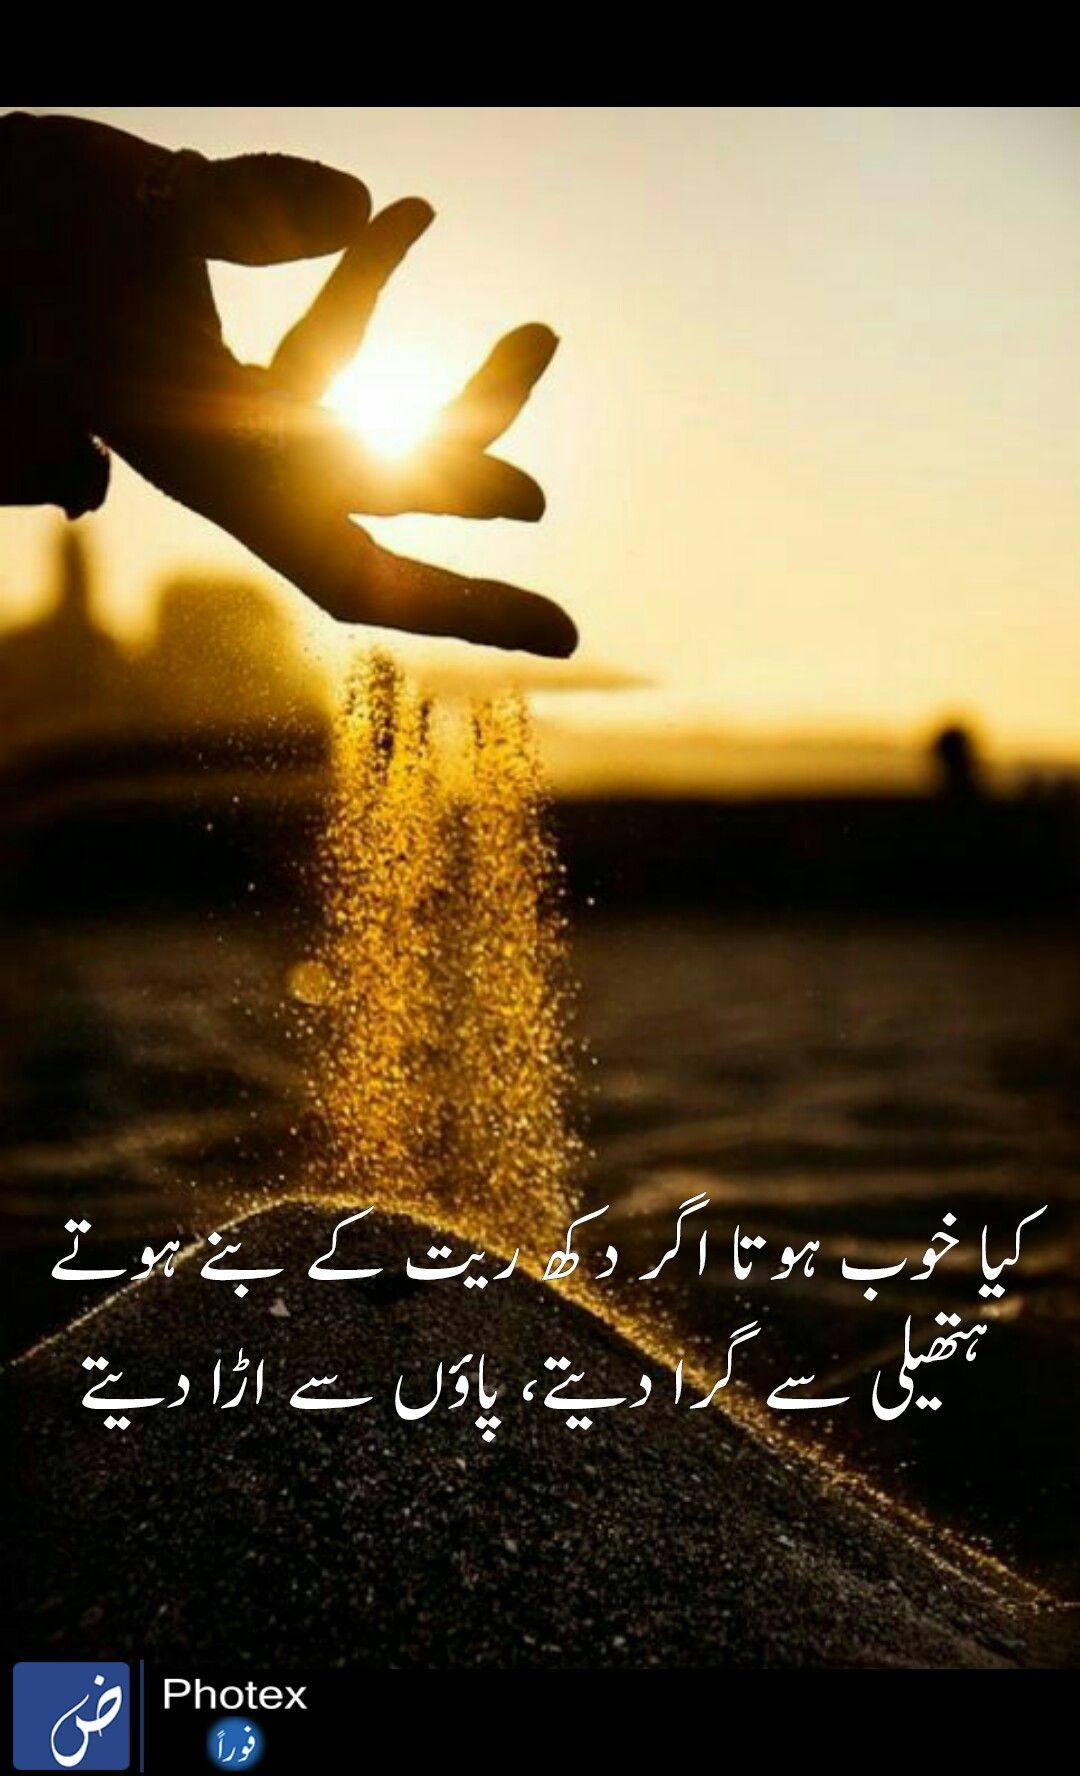 urdu quote beach photography nature photography photo